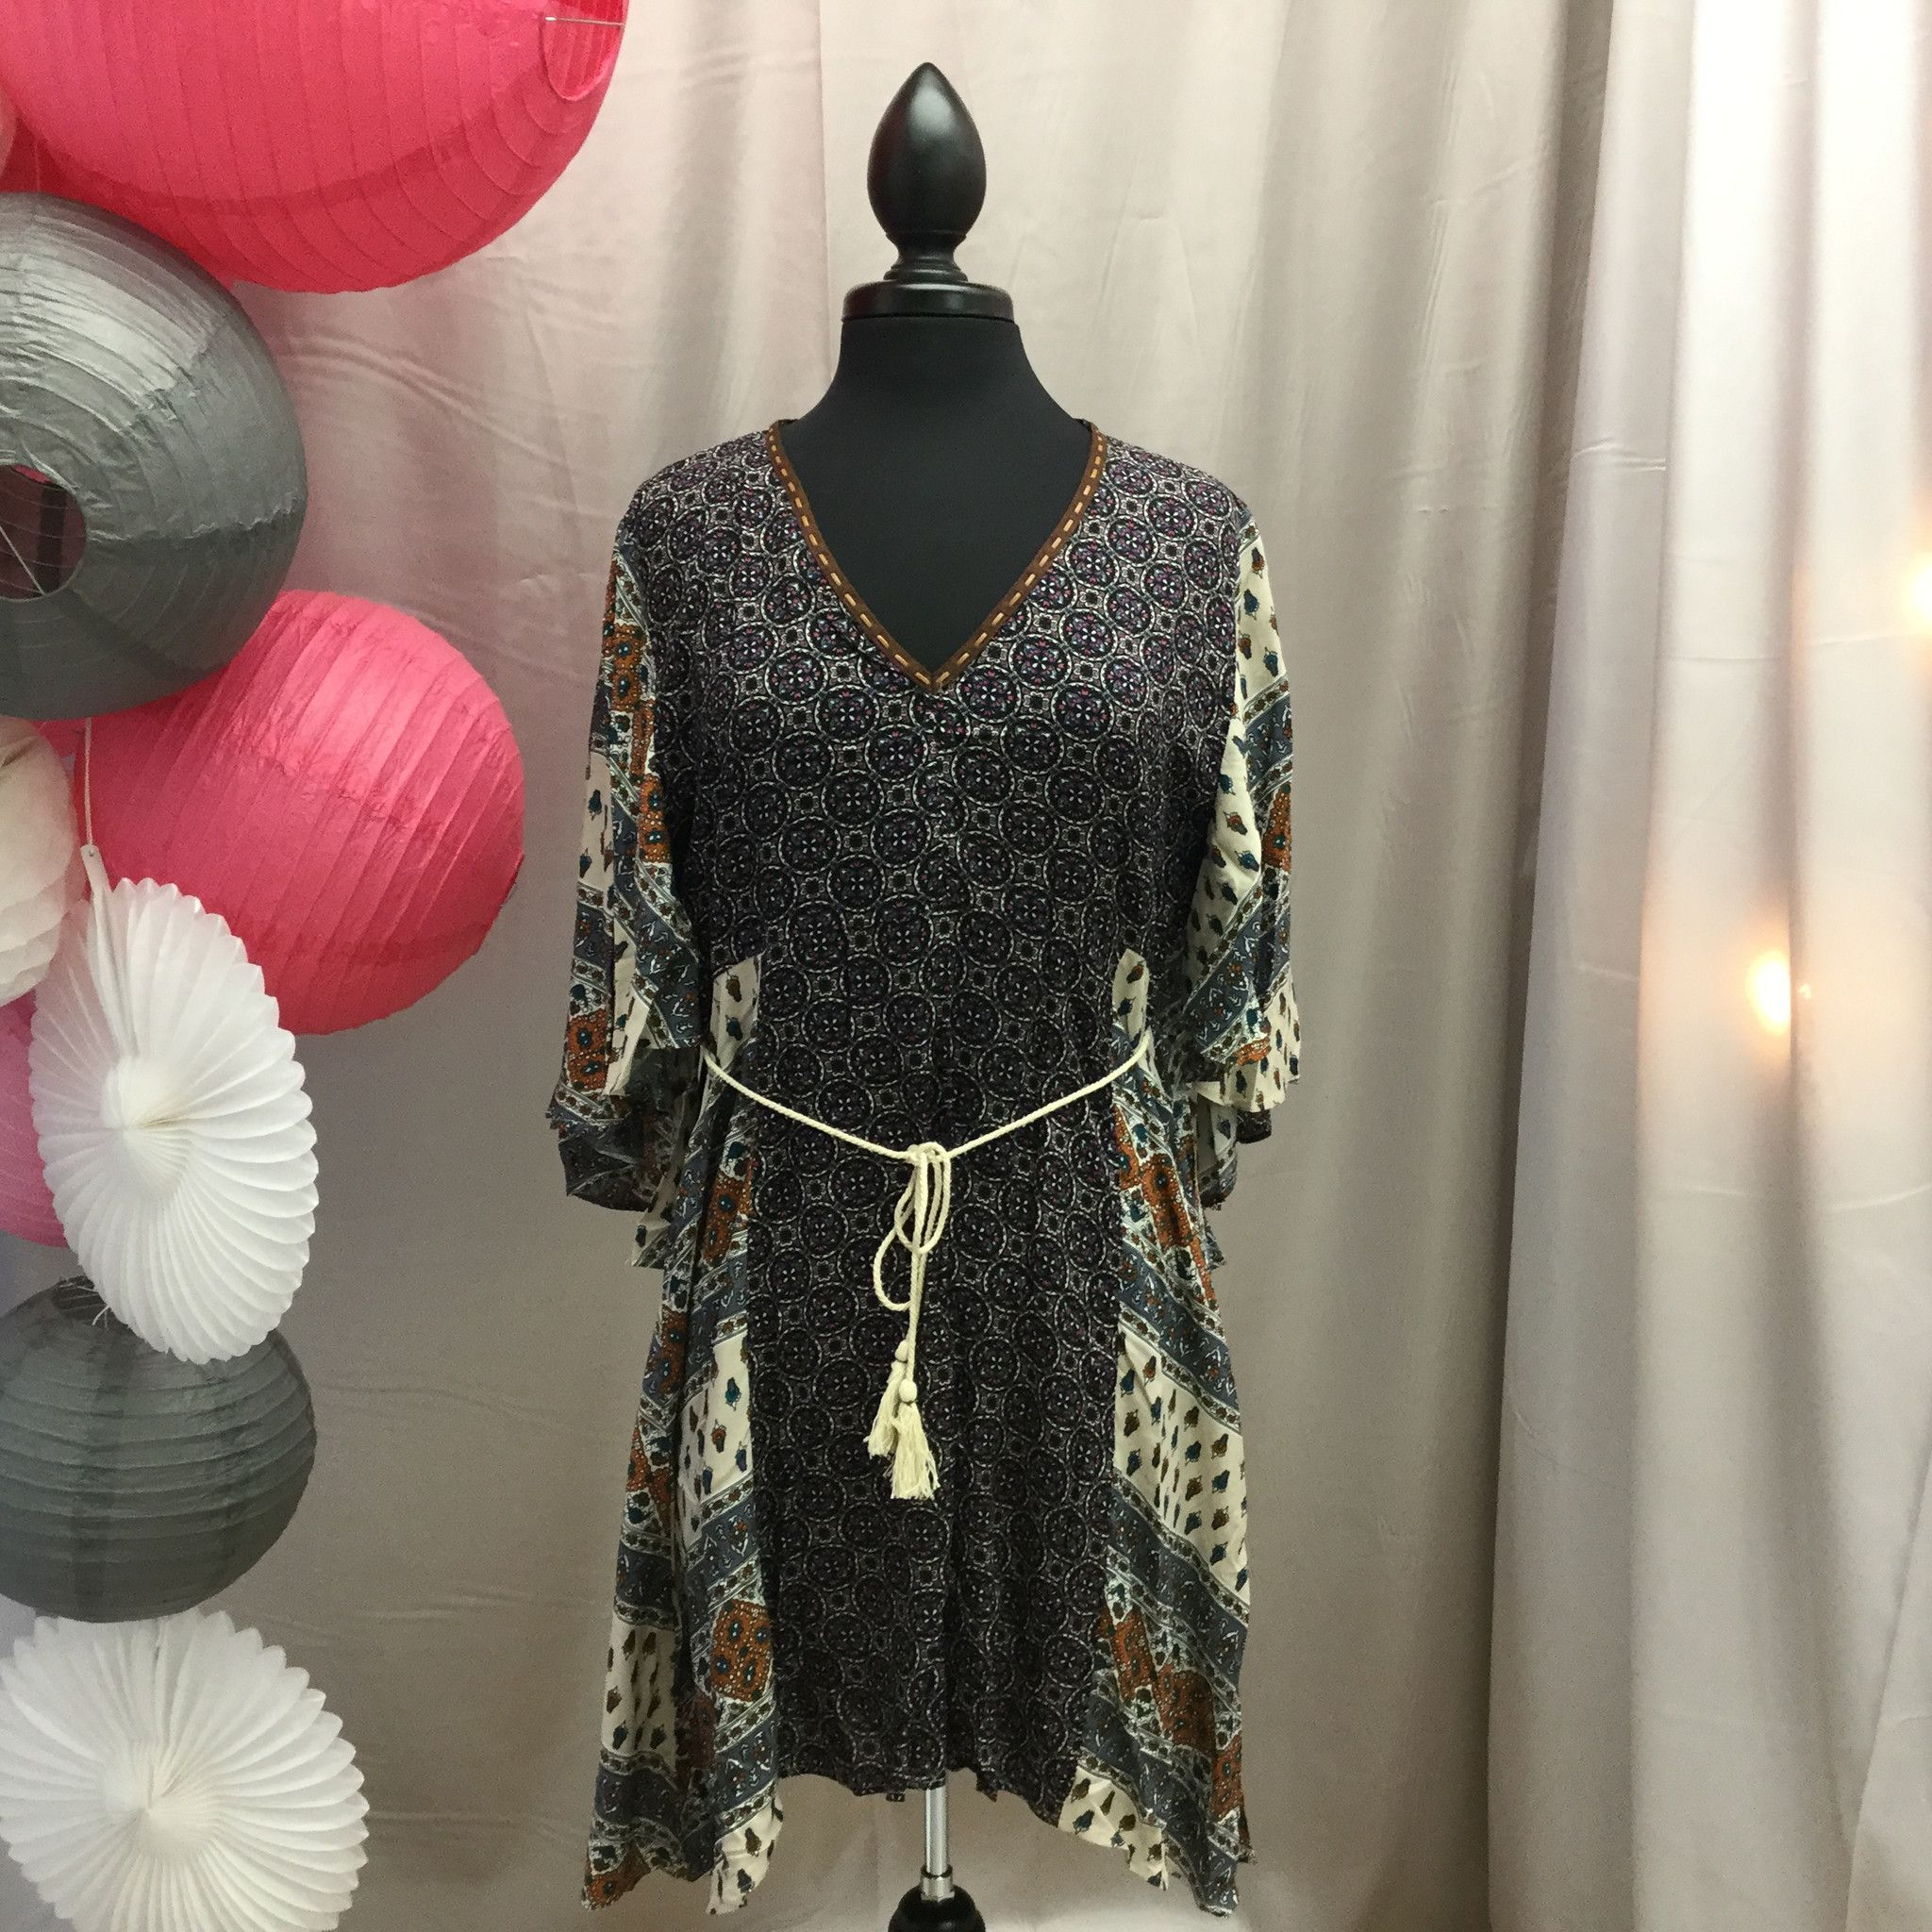 TRENDSETTING, GORGEOUS!! We cannot say enough about how adorable this dress is...especially when paired with our mocha vest!! Details everywhere... mixed prints, woven laced neckline,tassel rope tie,